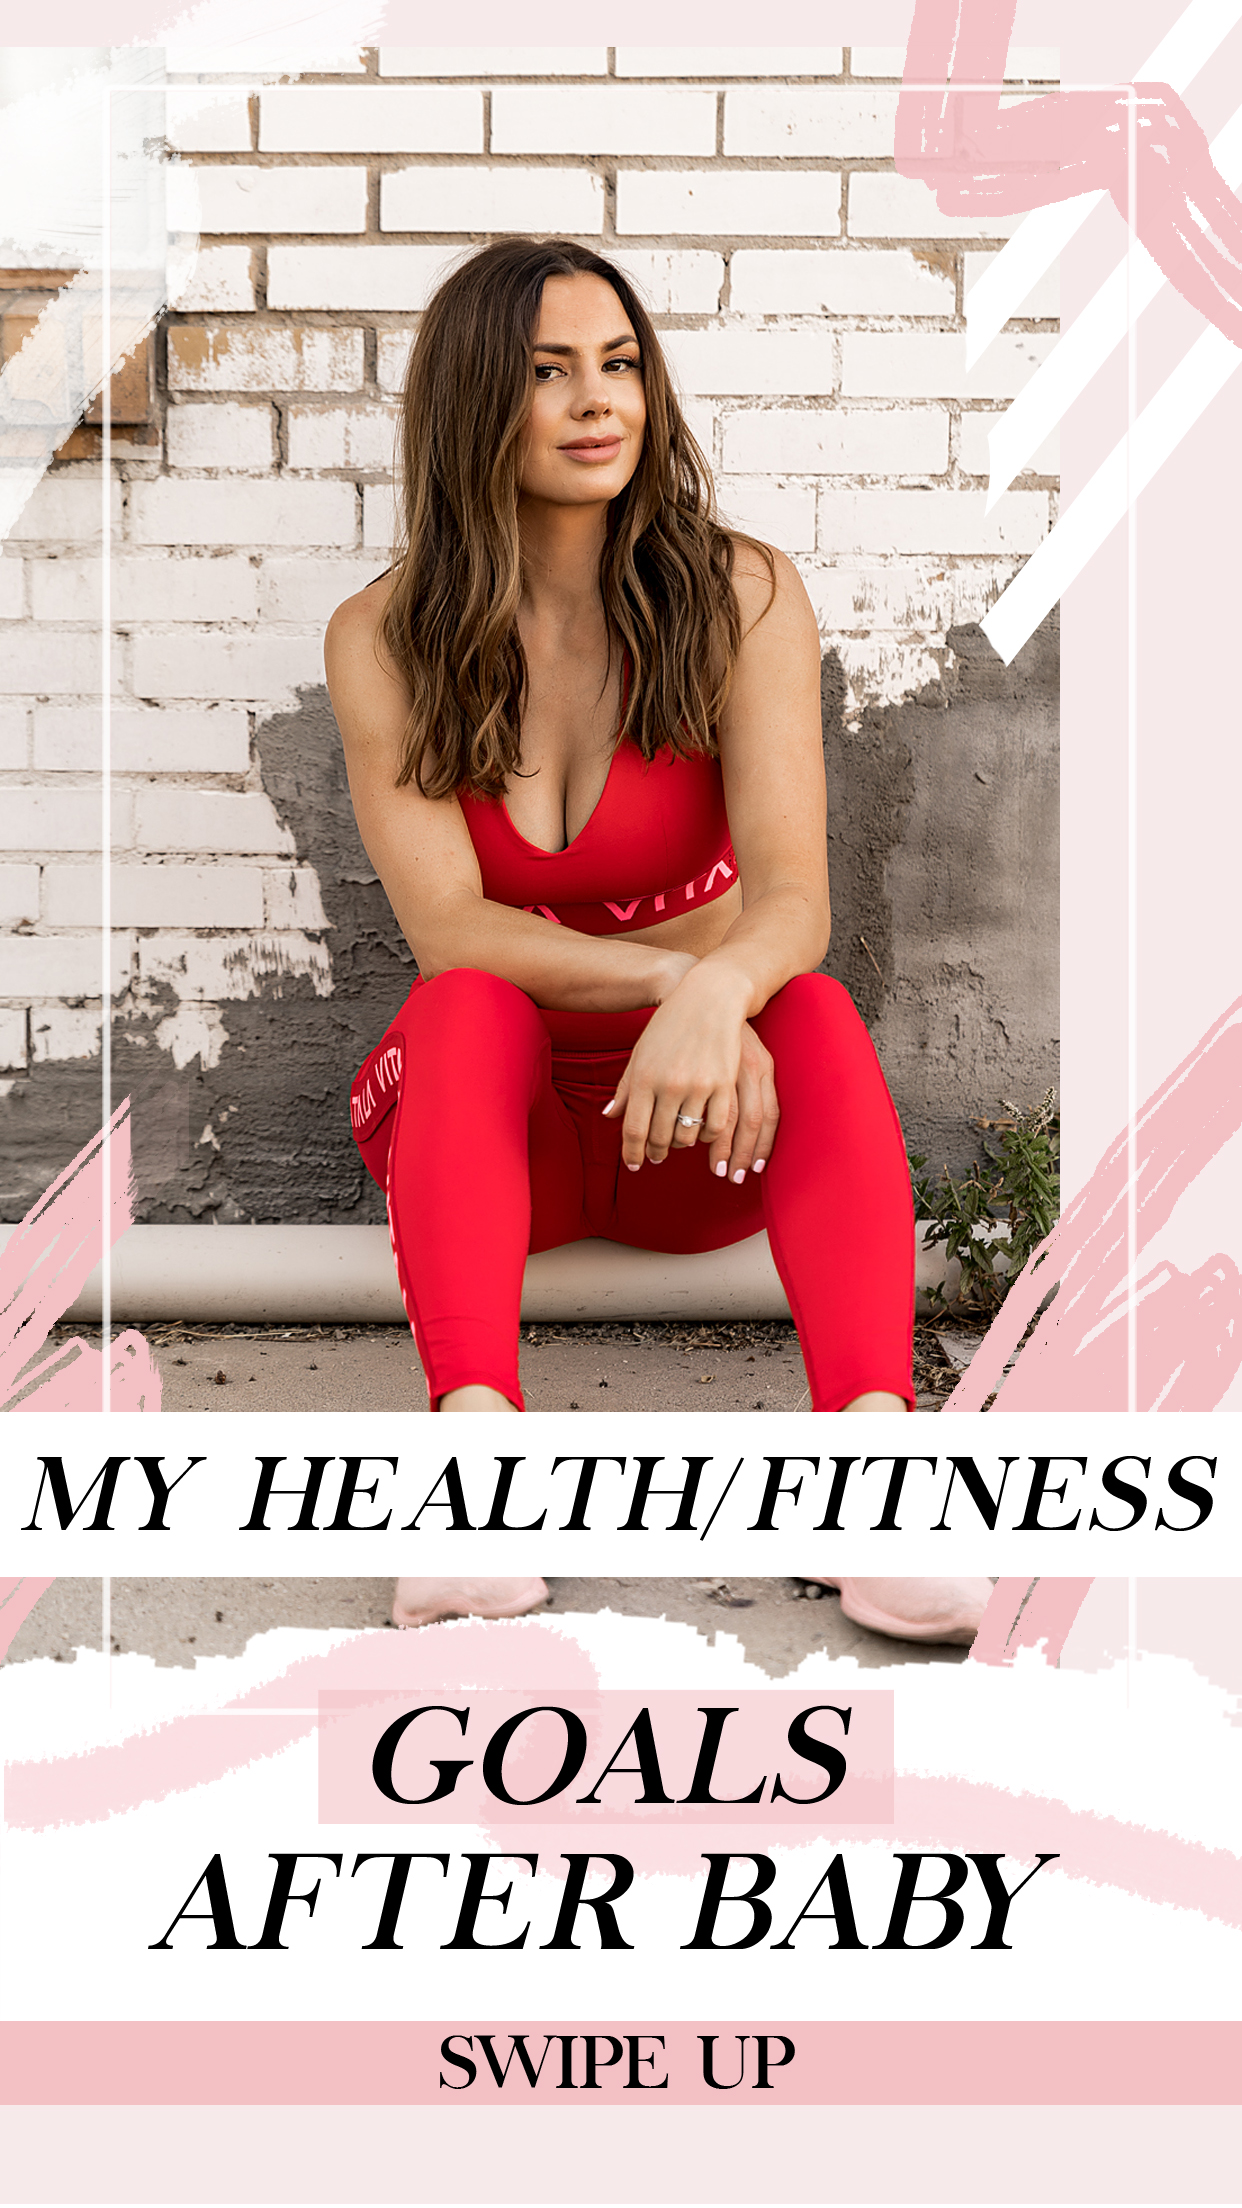 MY HEALTH FITNESS GOALS AFTER BABY